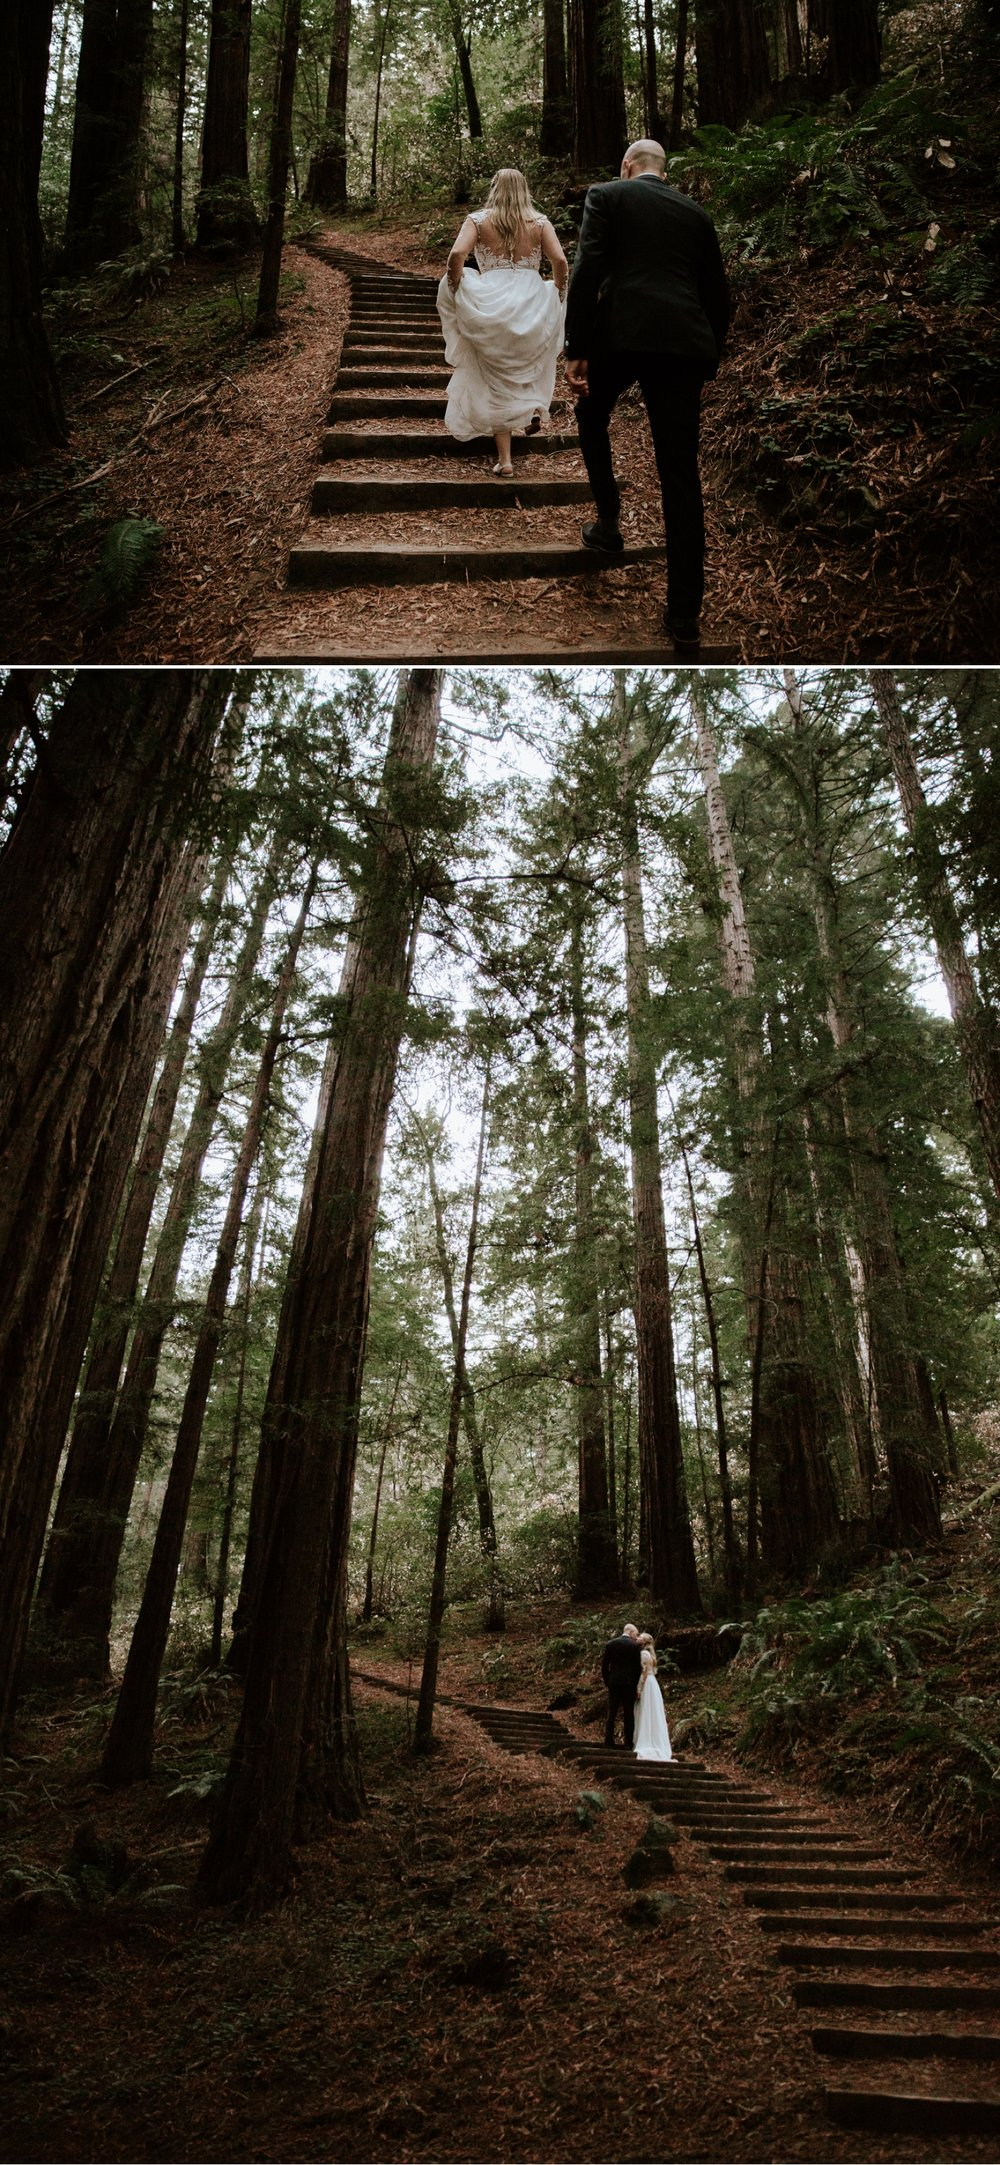 hannah-nick-intimate-muir-woods-wedding-31.jpg